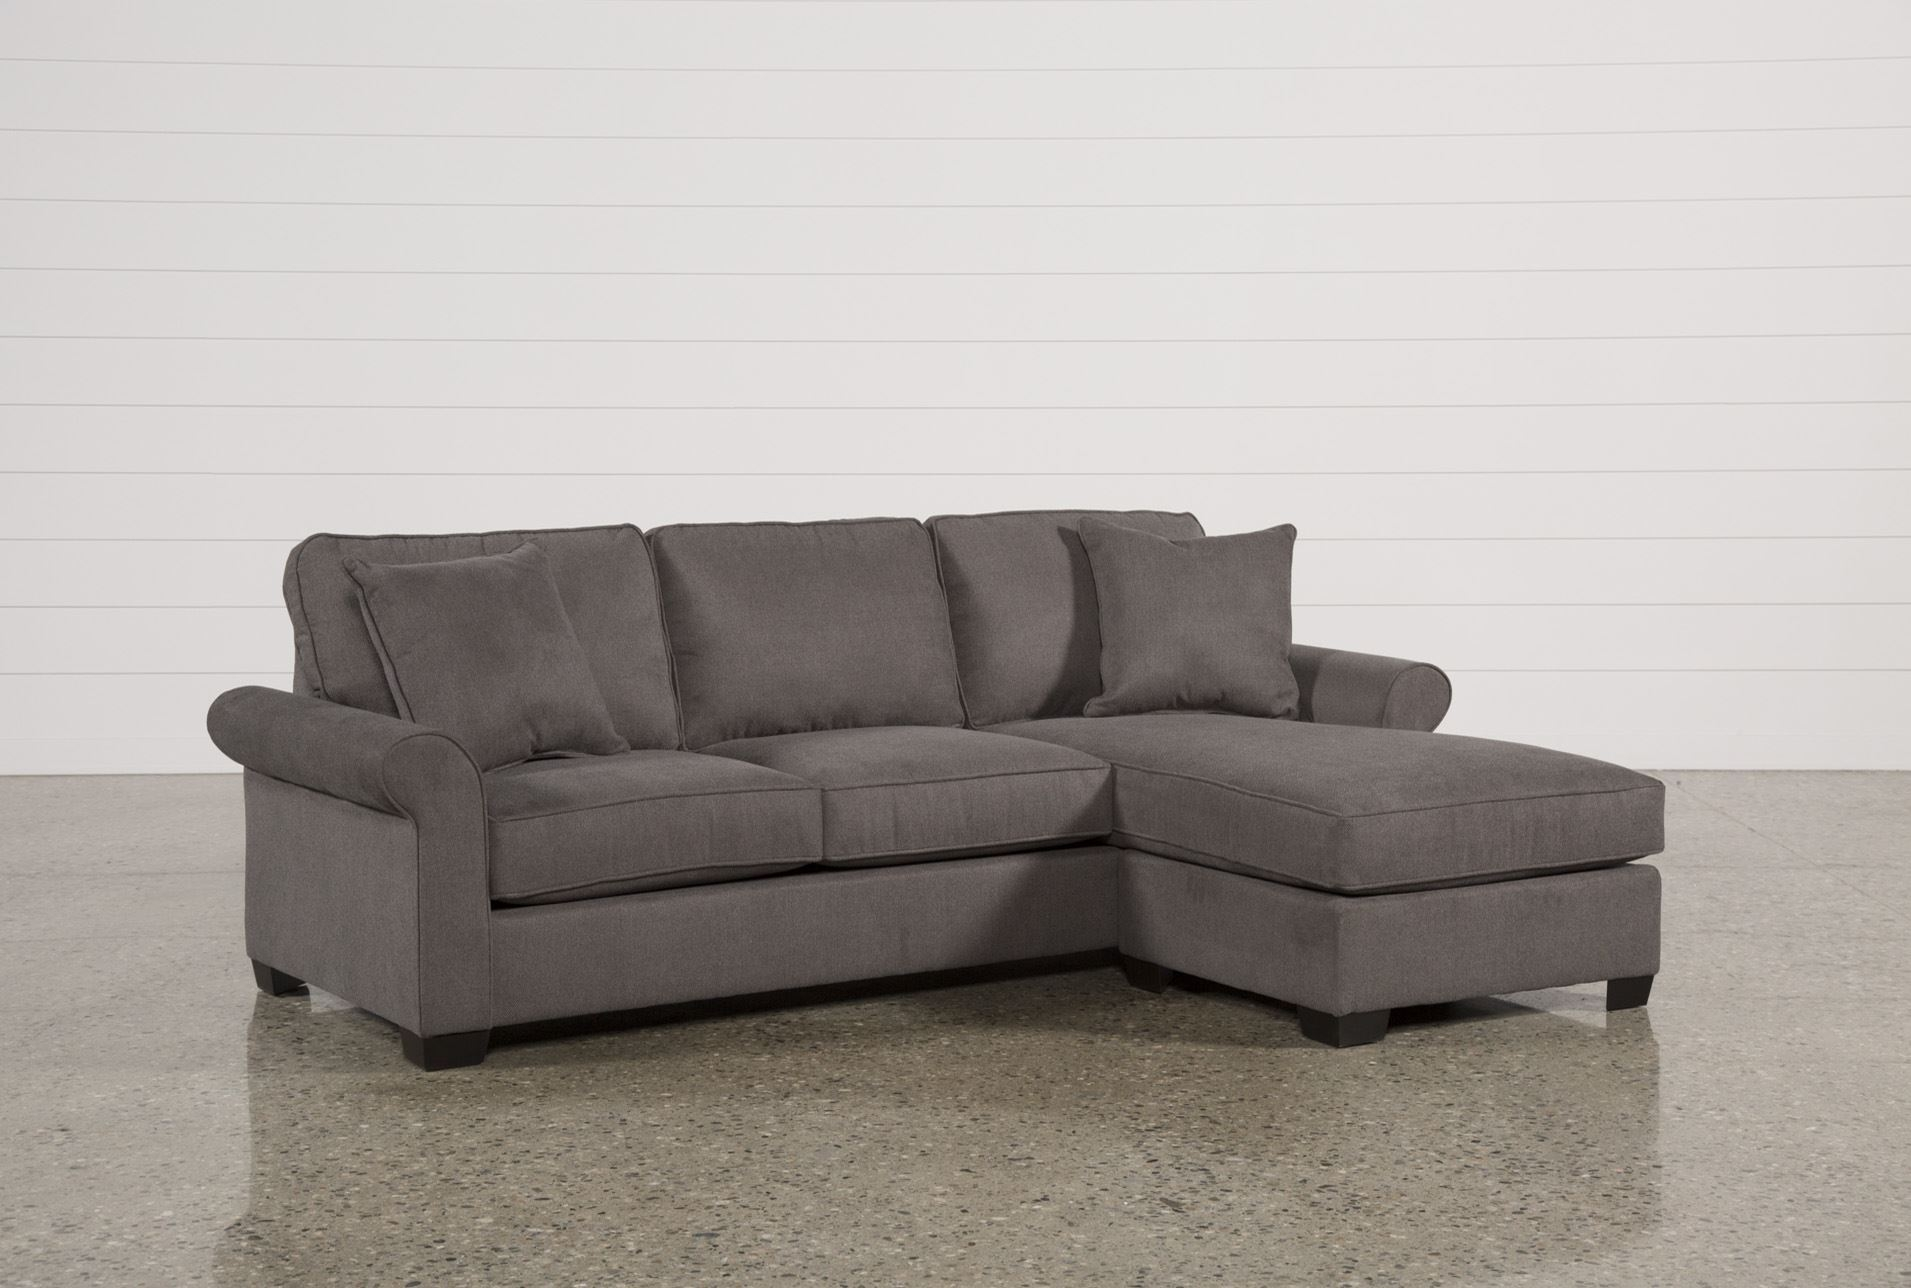 Extraordinary 45 Degree Sectional Sofa 85 For Sectional Sofa With In 45 Degree Sectional Sofa (#8 of 12)